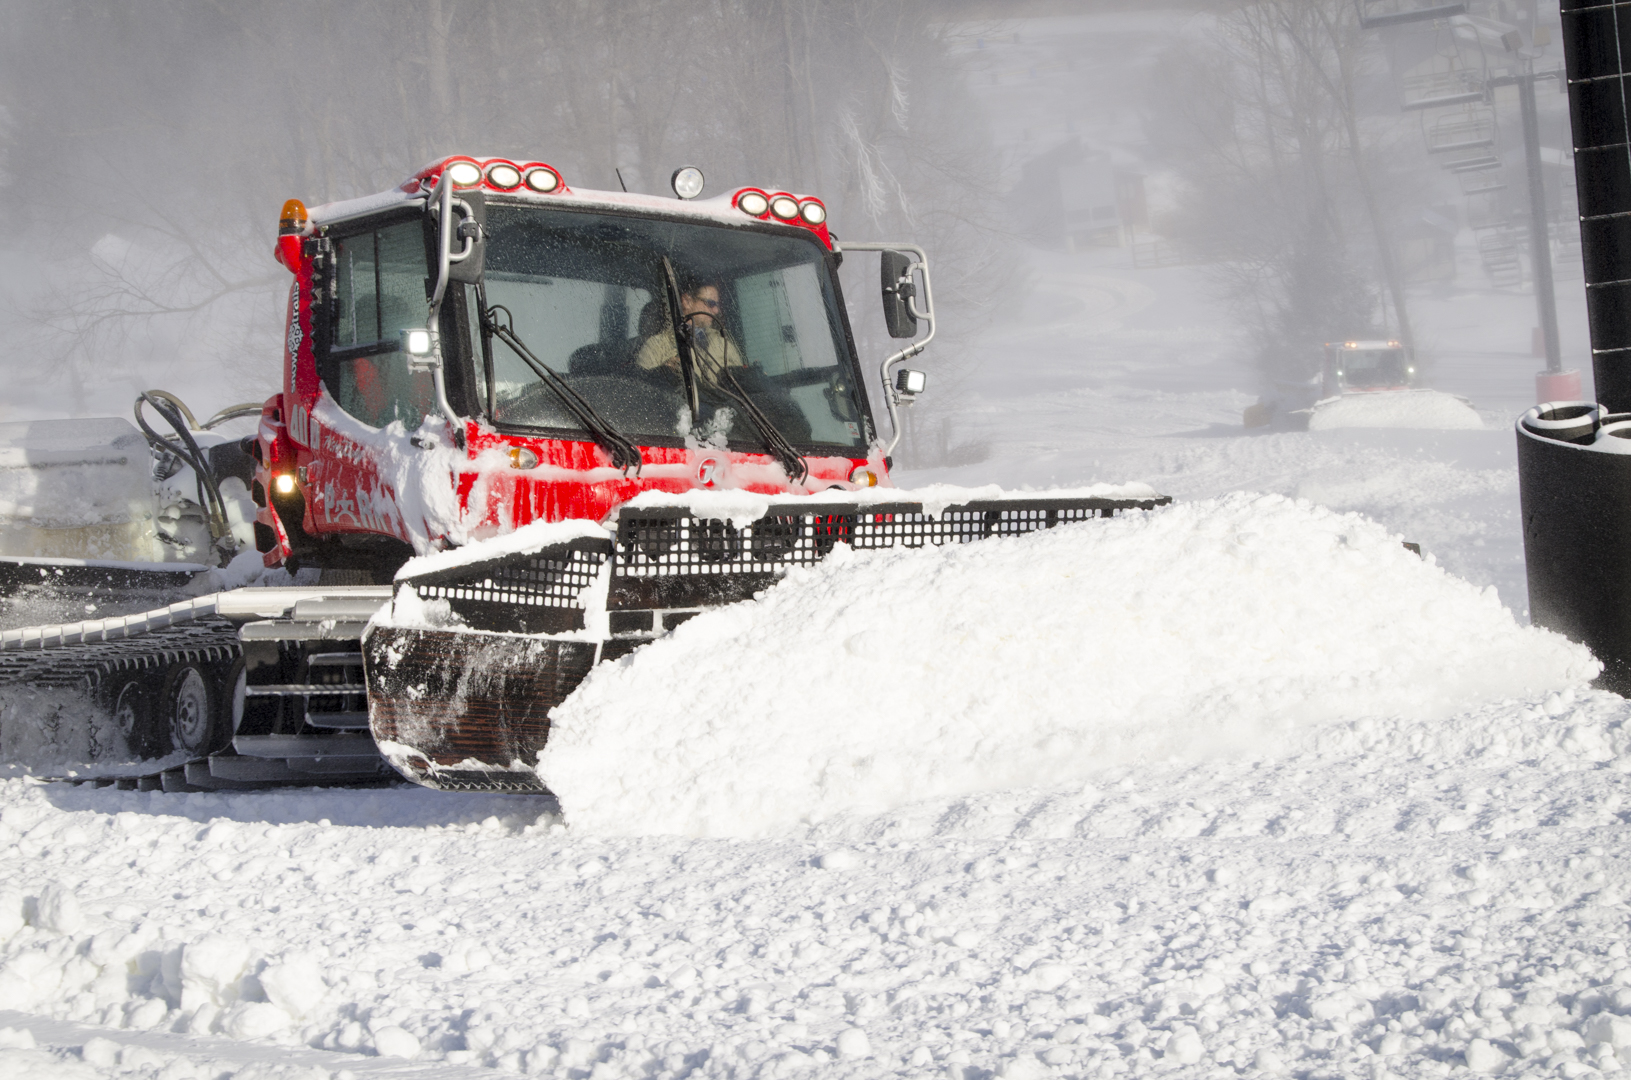 Pisten Bully Snow Cat pushing fresh snow in Mogul Area at Snow Trails